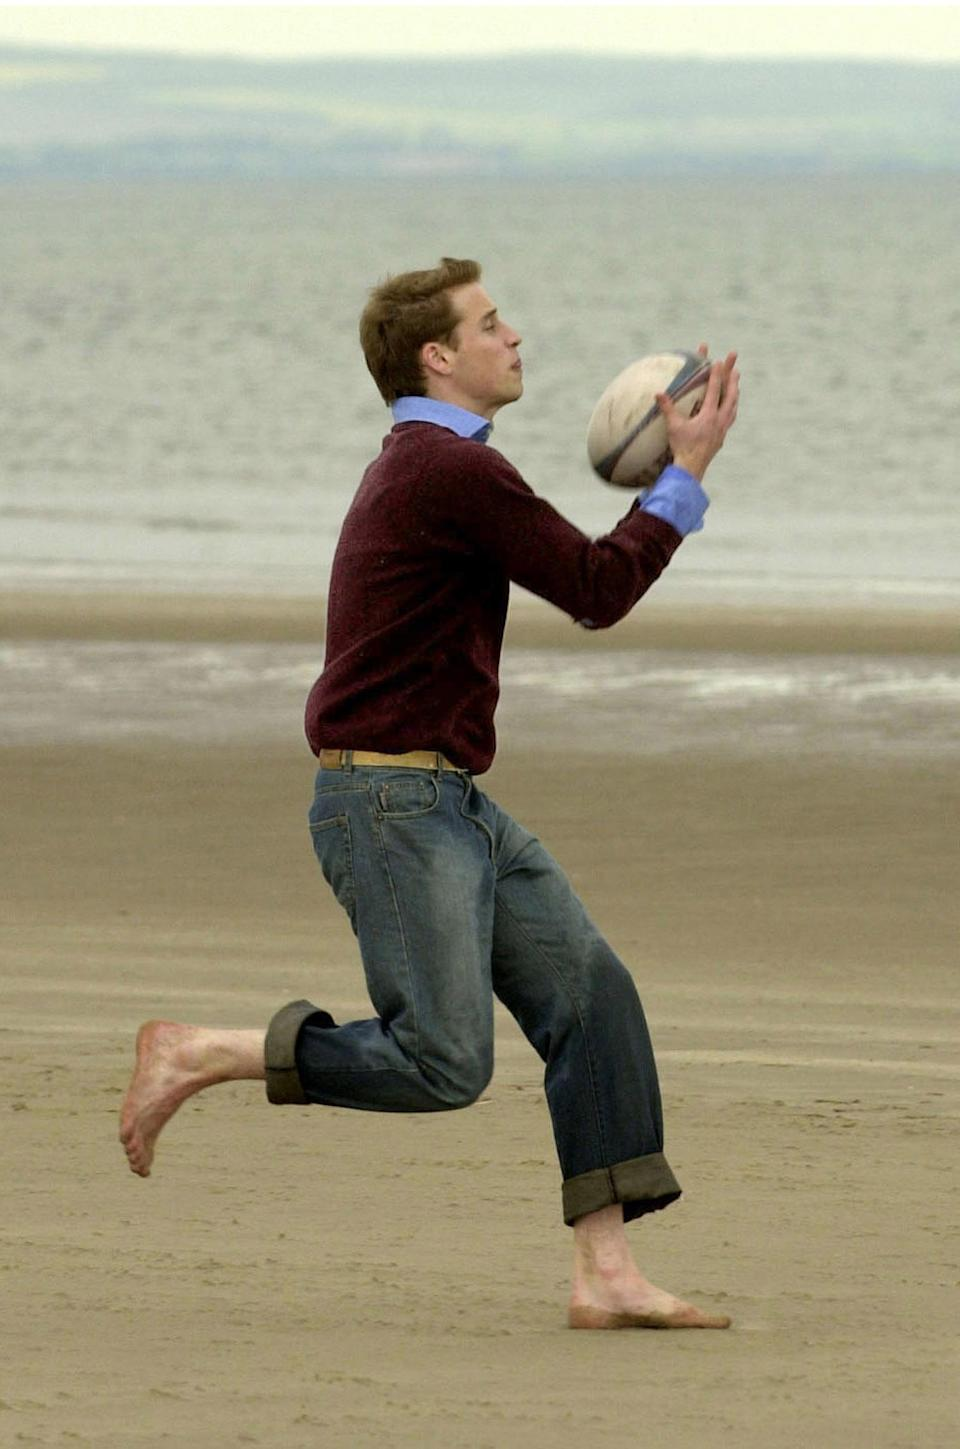 <p>Prince William catching a rugby ball on the beach at St Andrews. He and Kate will return to the beach during their week-long tour as they revisit their student days. (PA Images)</p>